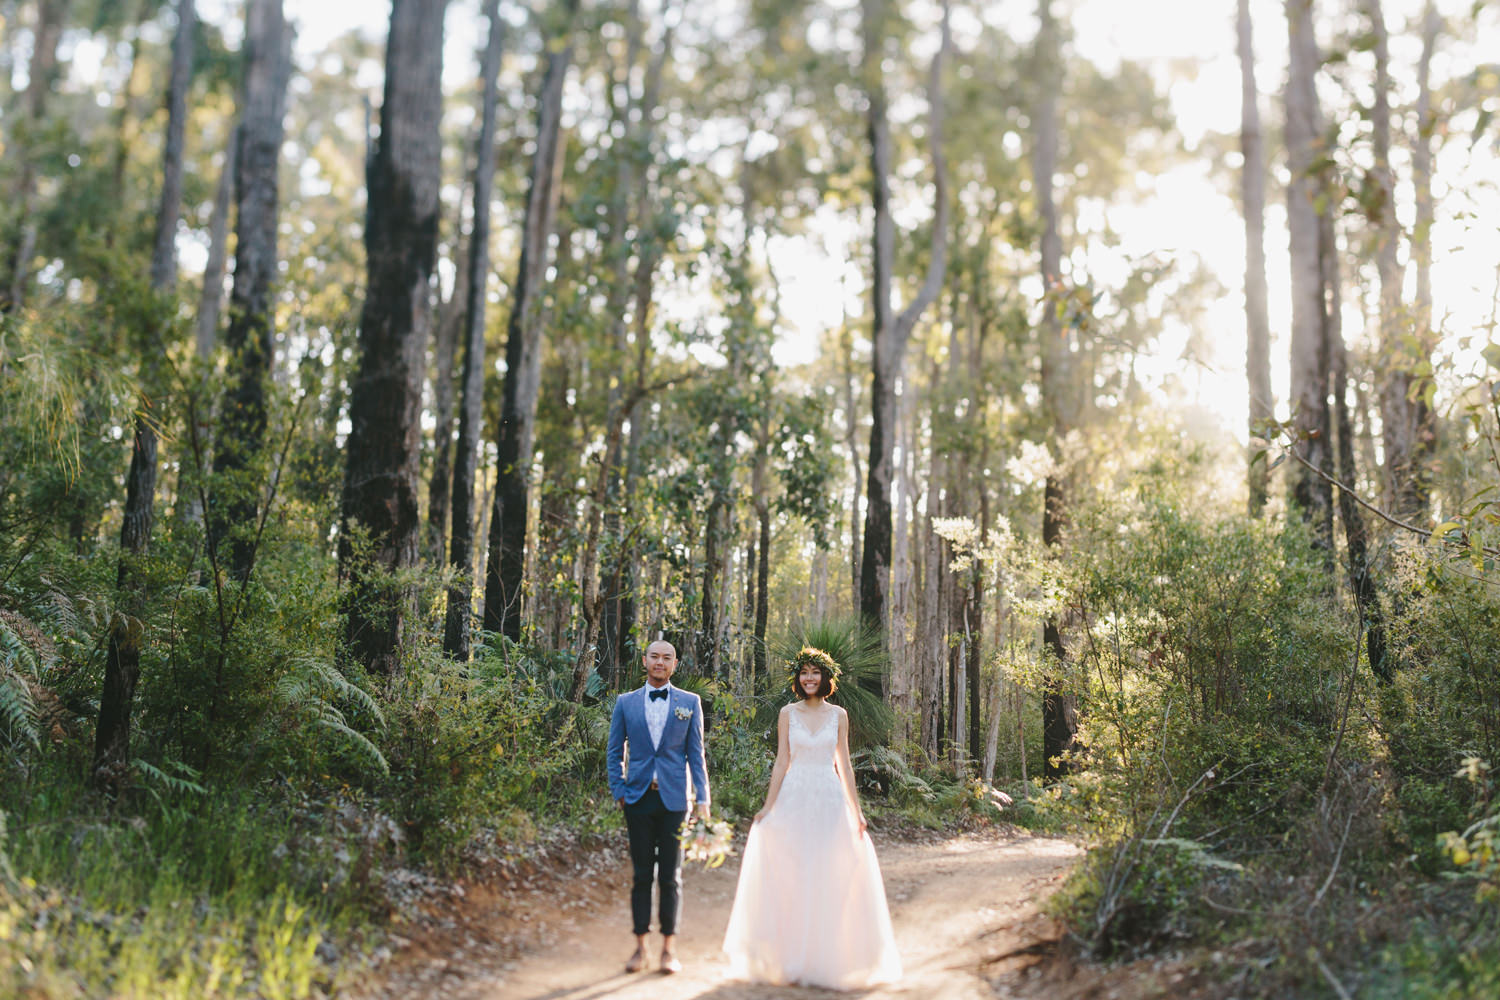 133-Barn_Wedding_Australia_Sam_Ting.jpg